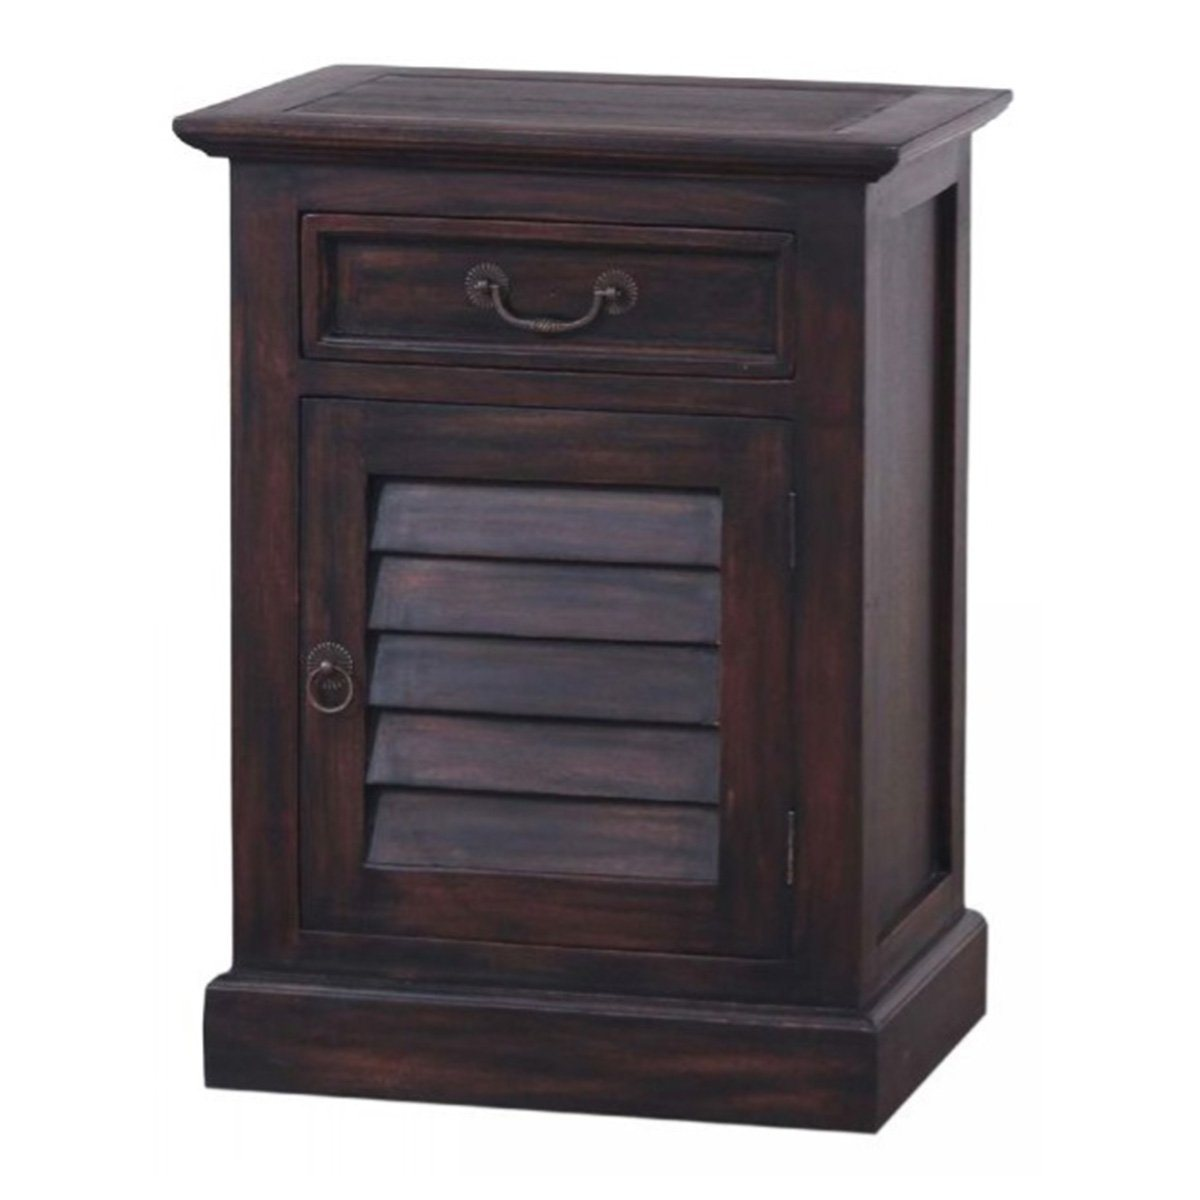 SMALL SHUTTER NIGHTSTAND CABINET Chests Bramble